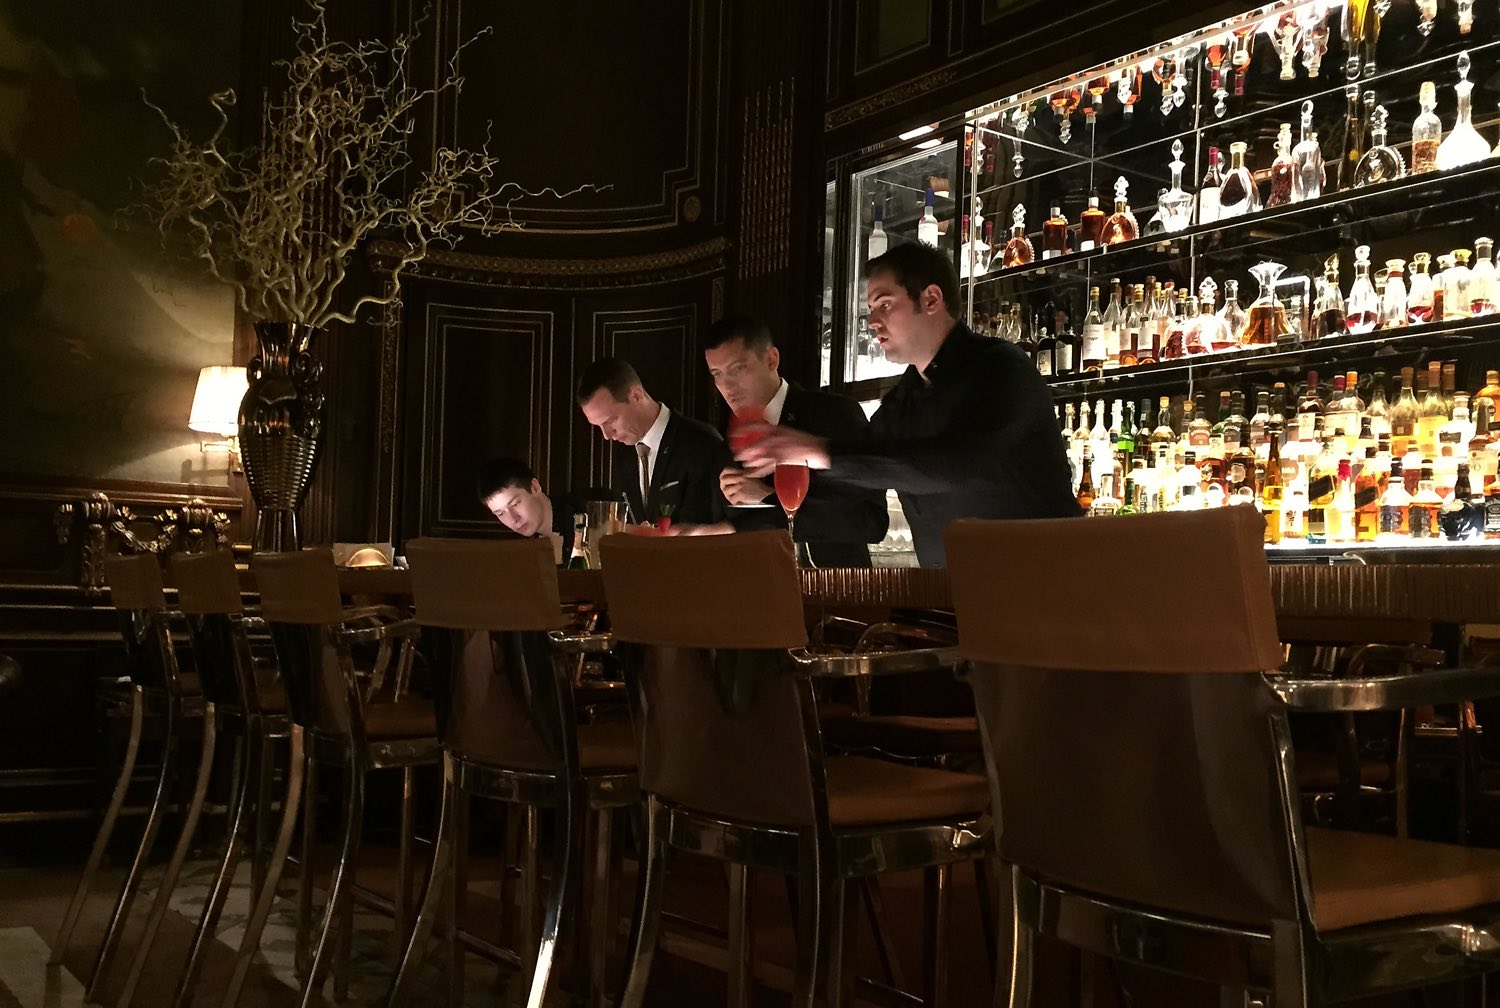 Bartenders at the five star Le Meurice Hotel in Paris mixing up drinks for thirsty customers. (Patricia Sheridan/Post-Gazette)